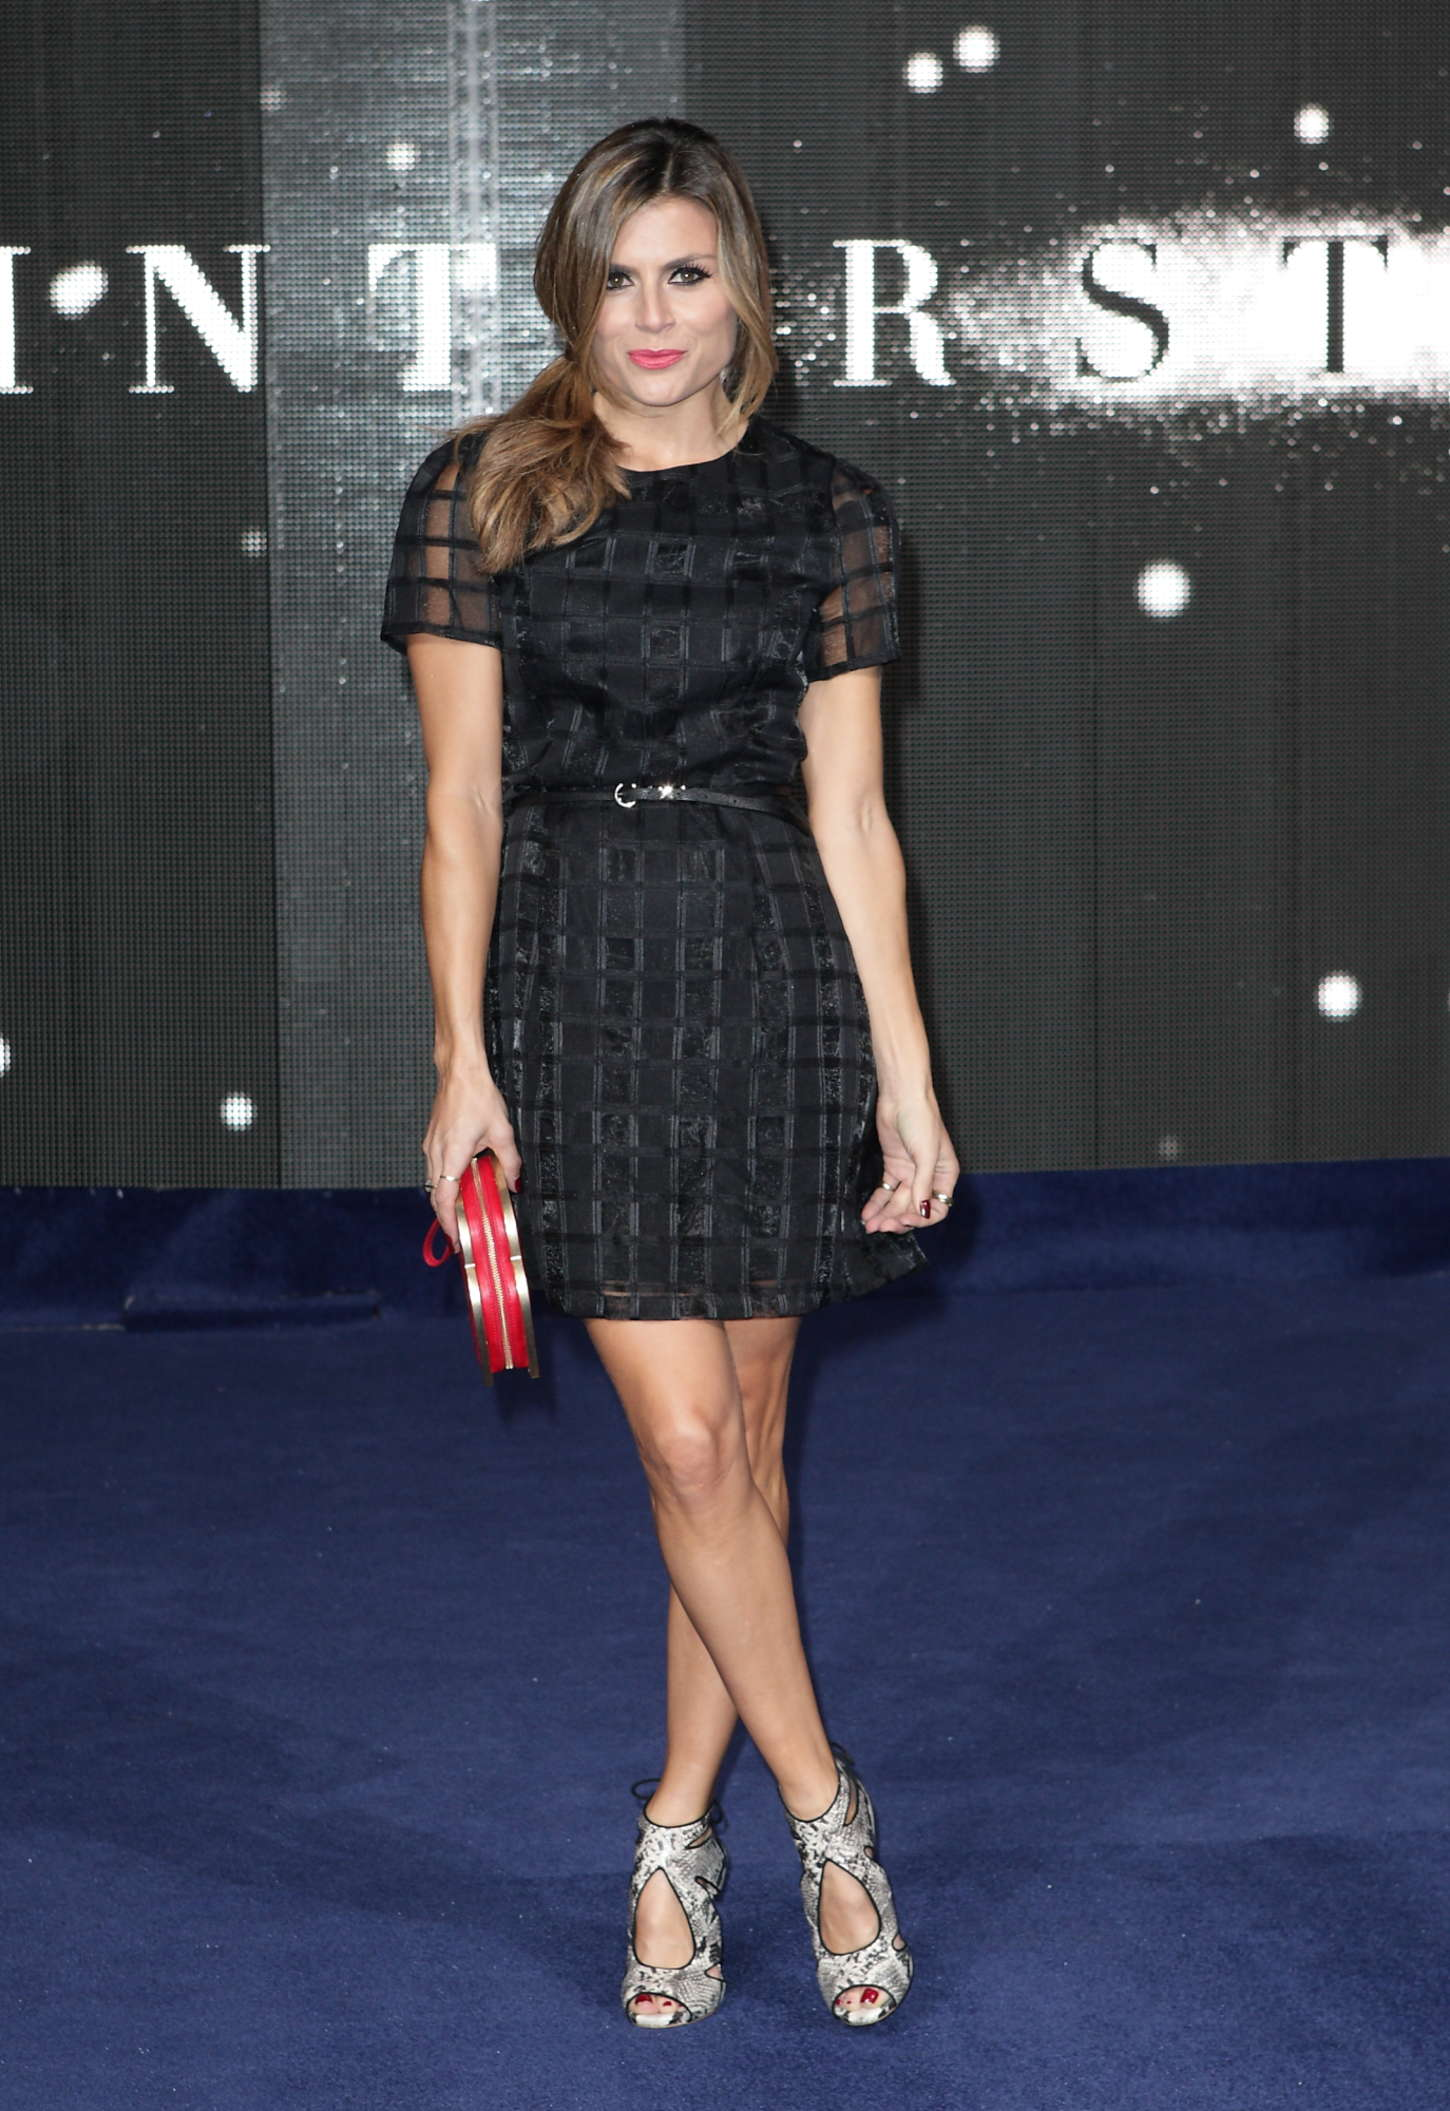 Zoe Hardman at Premiere Interstellar in London